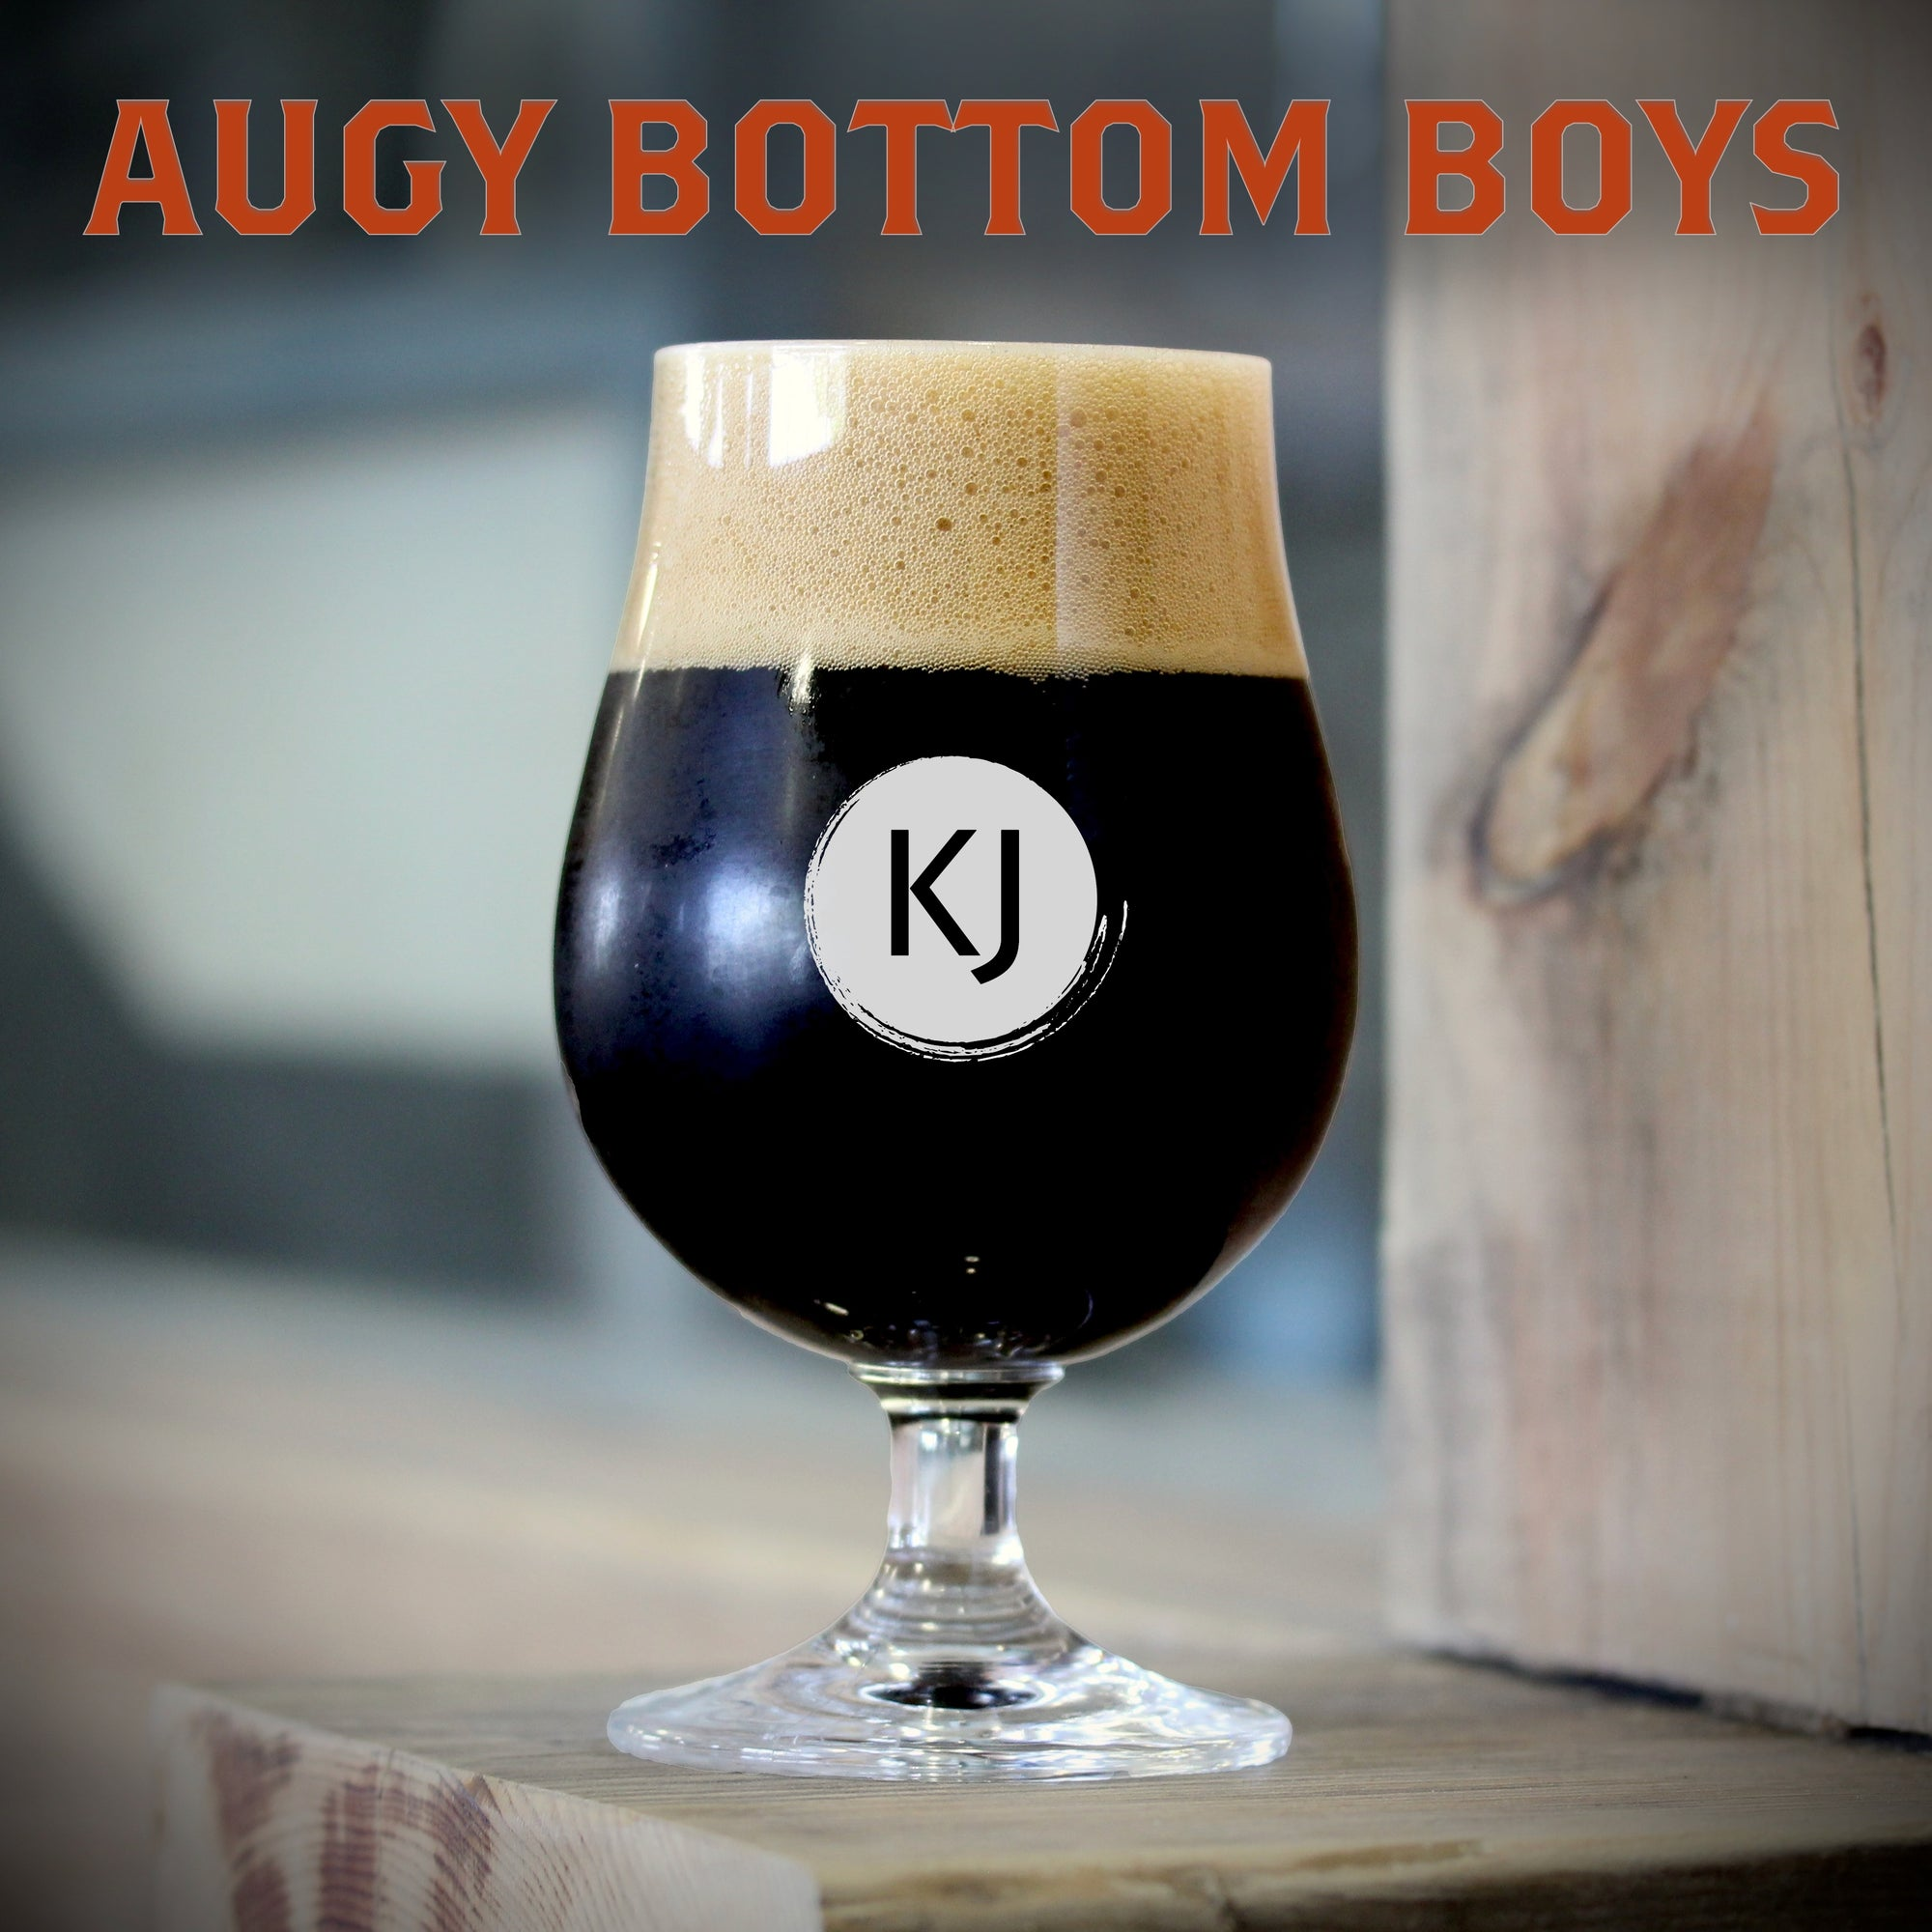 Augy Bottom Boys - Porter Recipe